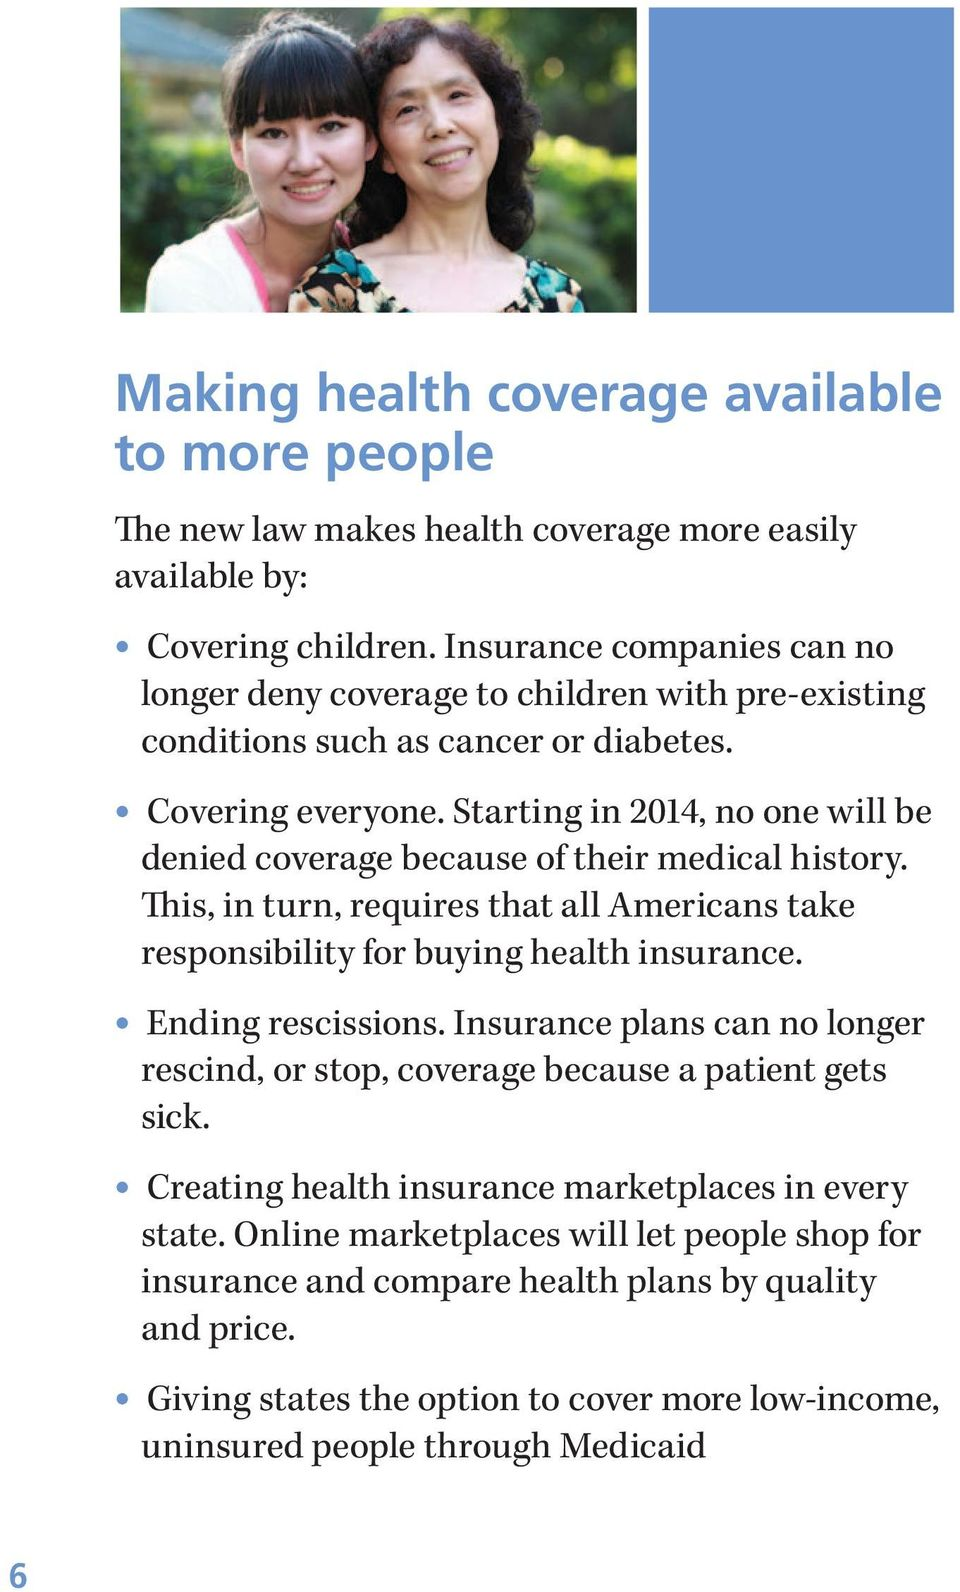 Starting in 2014, no one will be denied coverage because of their medical history. This, in turn, requires that all Americans take responsibility for buying health insurance. Ending rescissions.